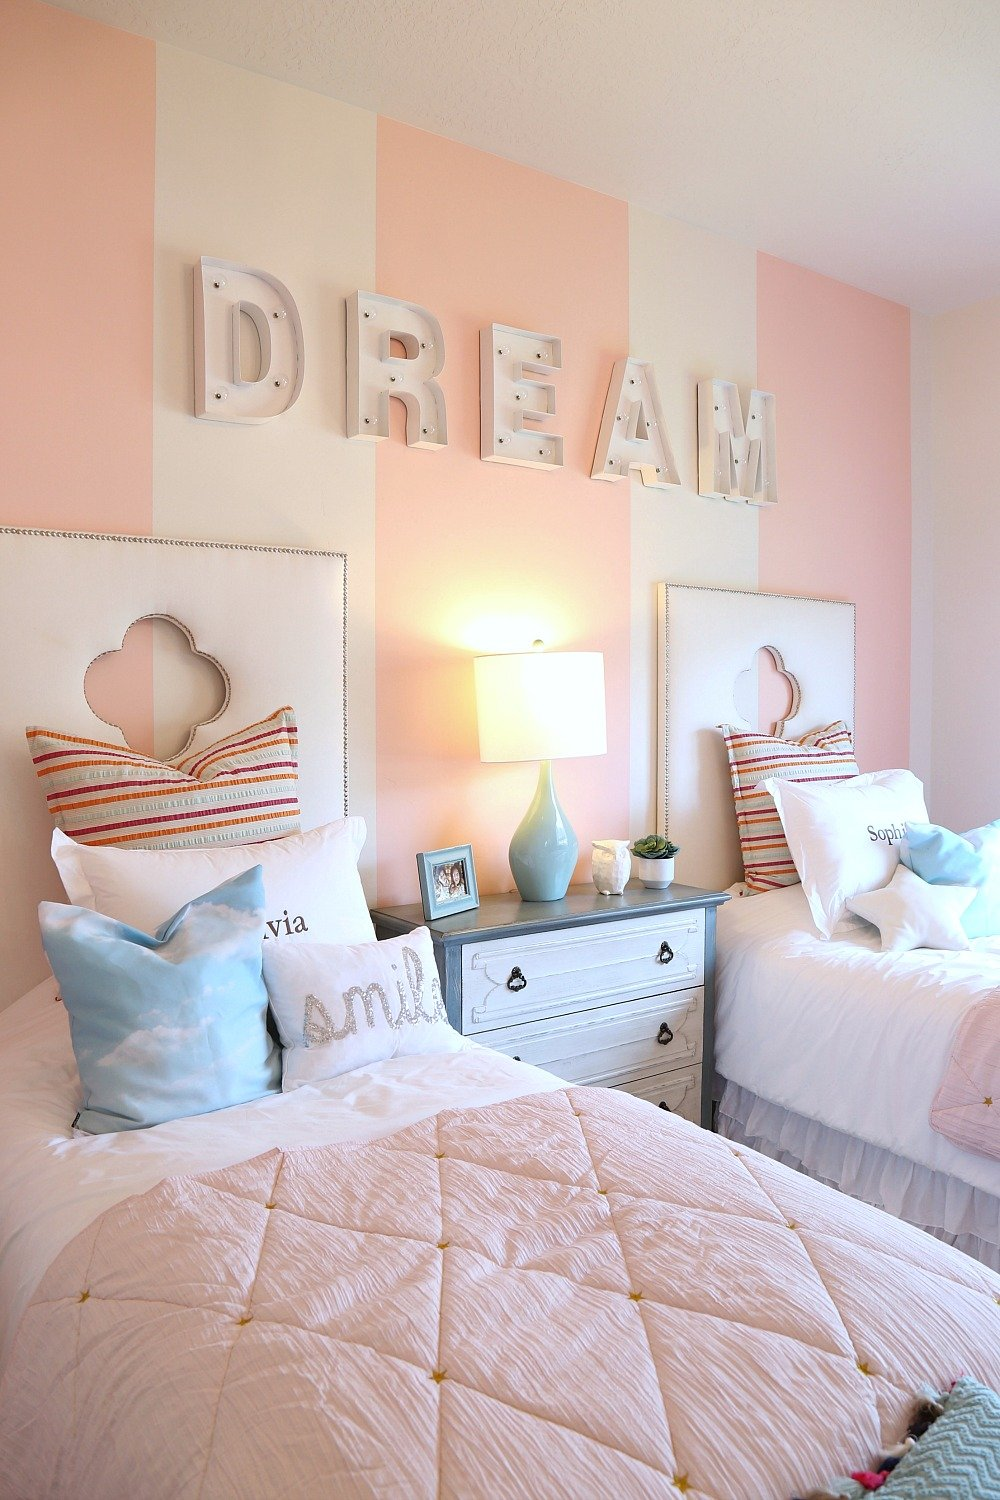 Letters spelling out words or a childs name on the bedroom wall